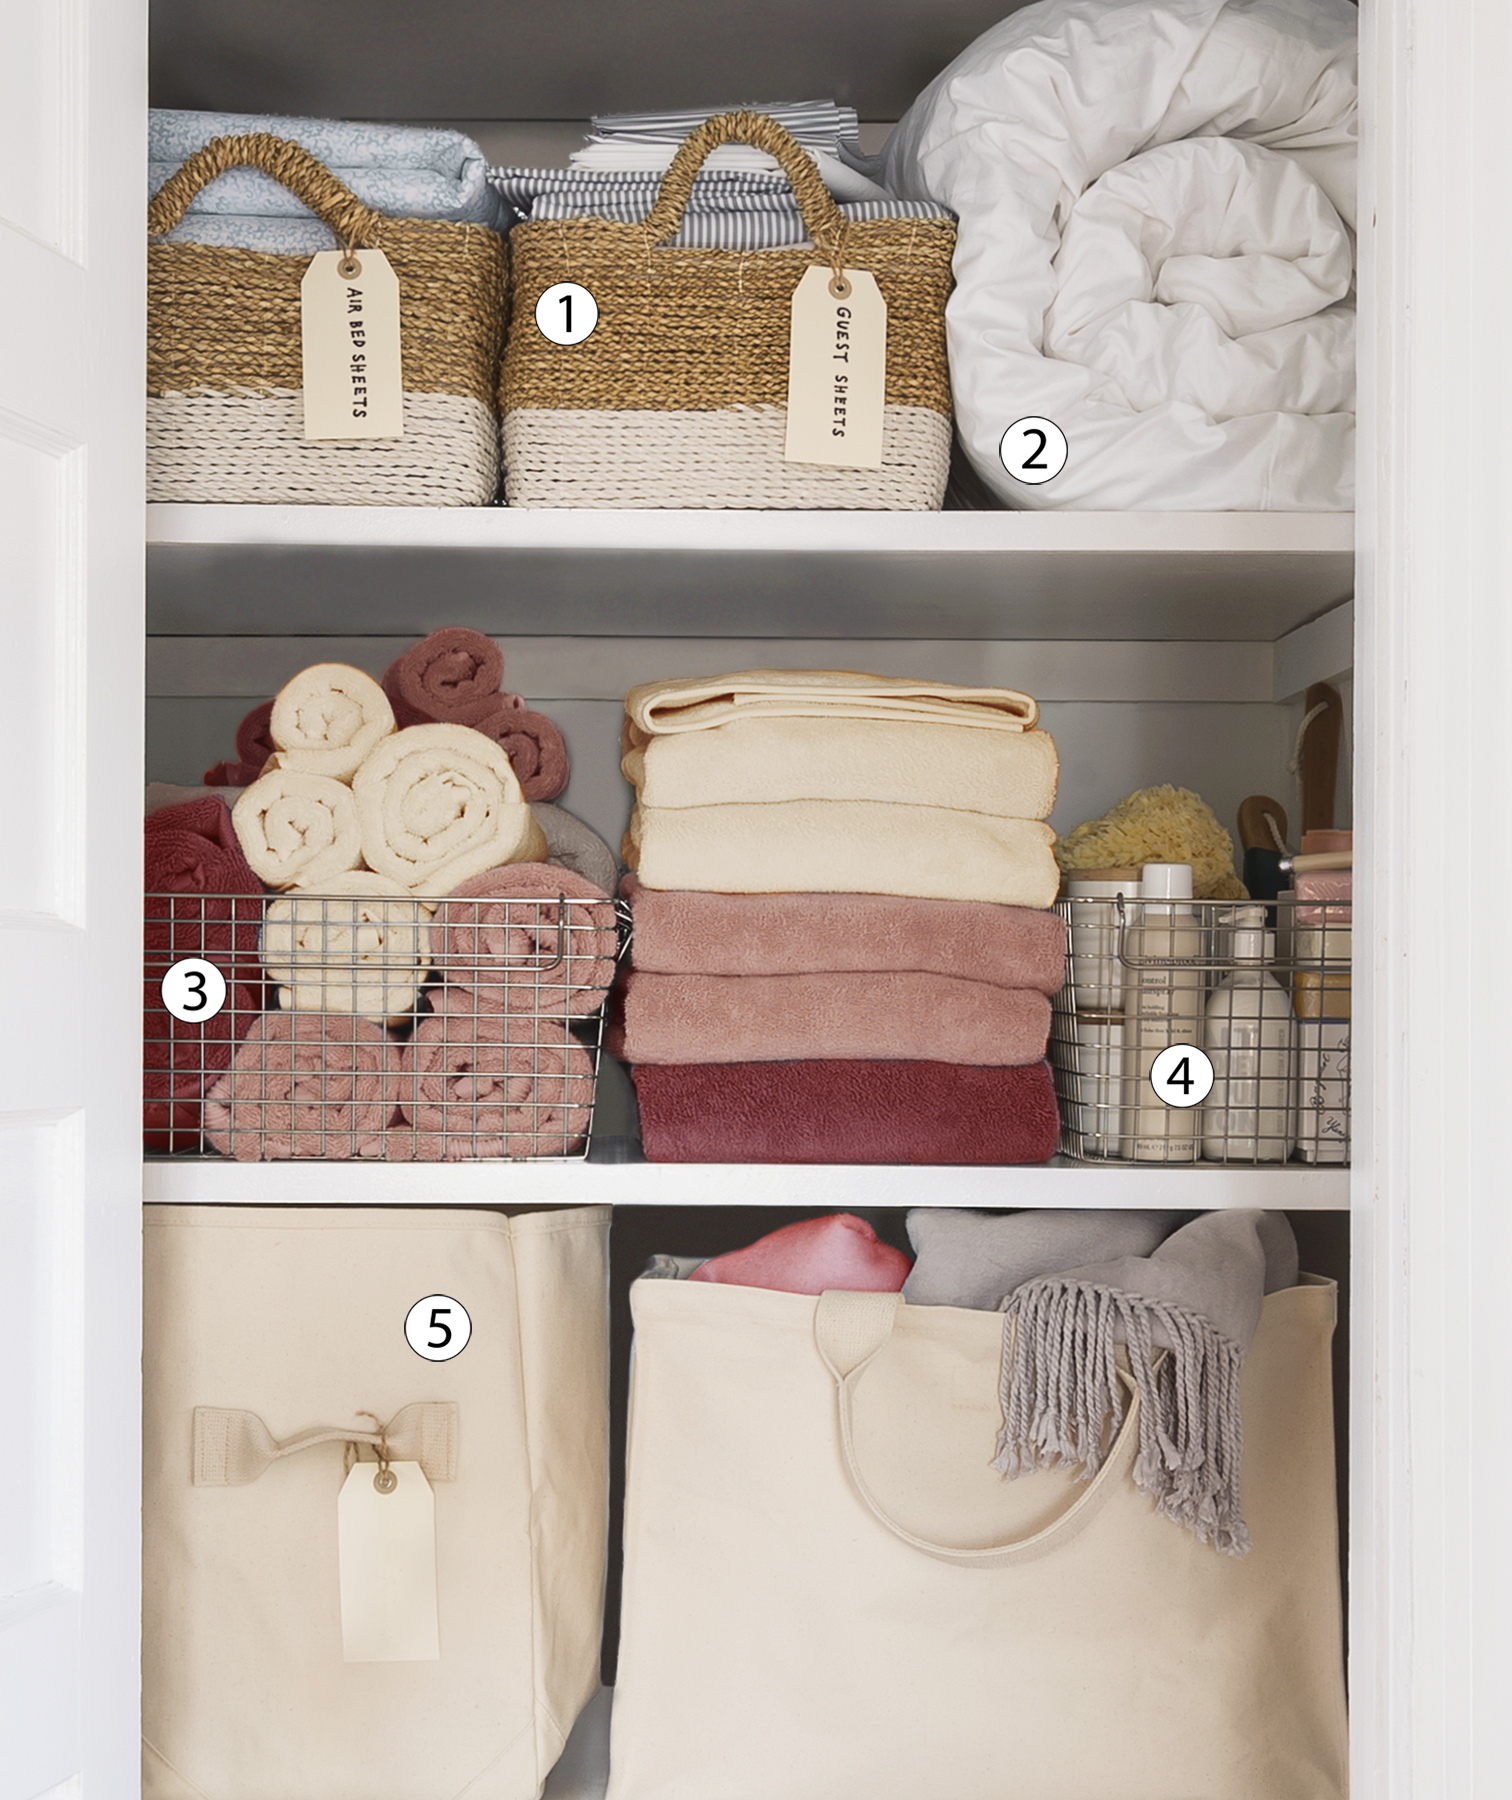 Organized linen closet (numbered)